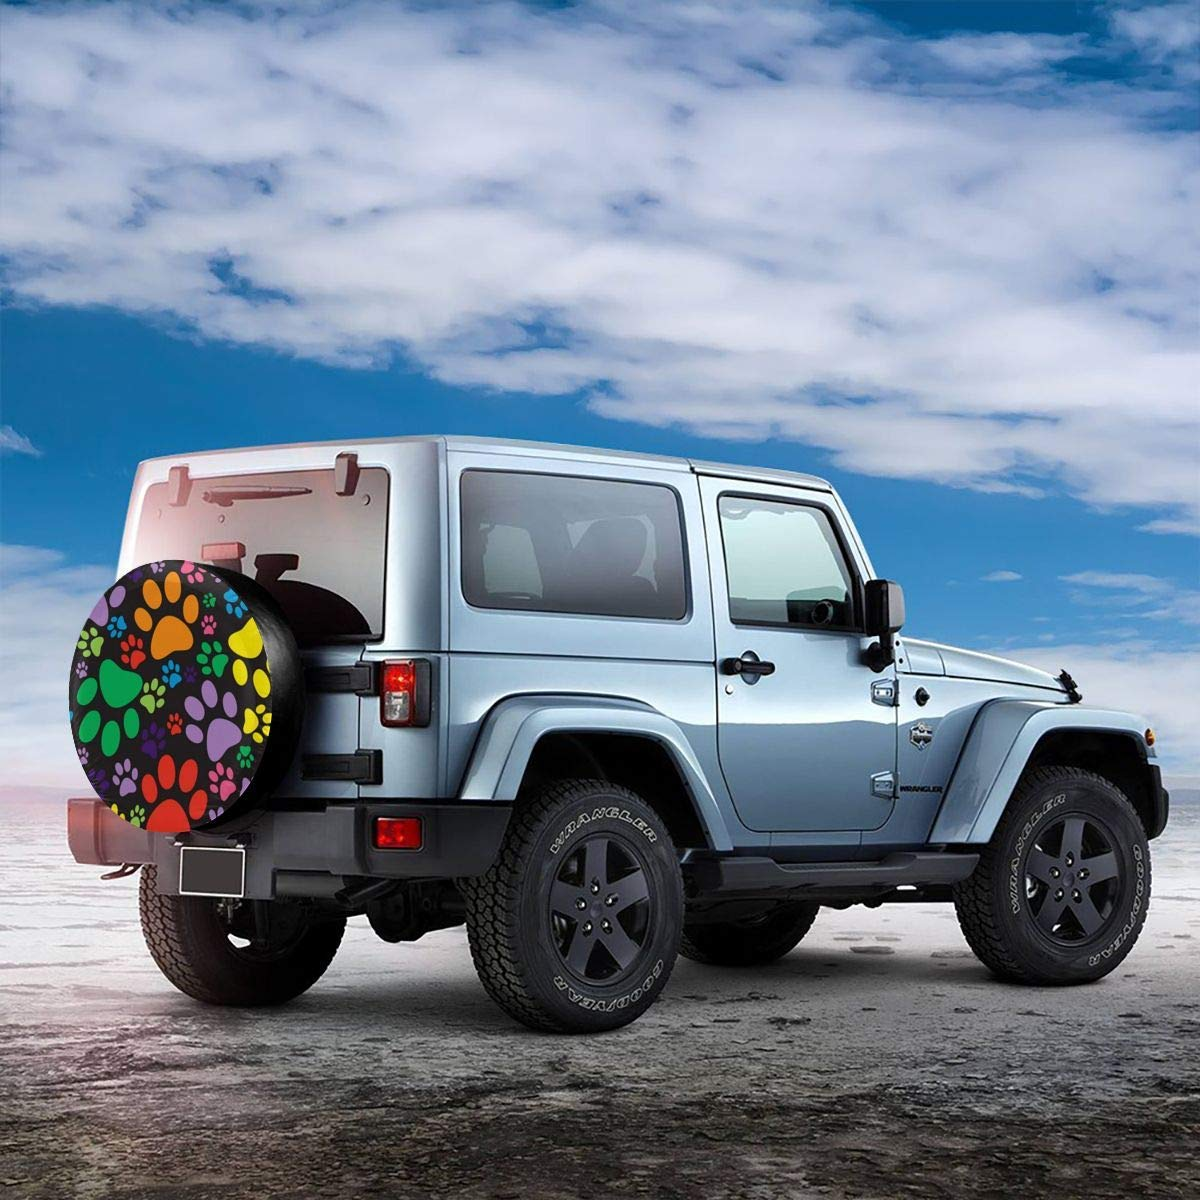 14,15,16,17 Inch Tire Cover Polyester Universal Spare Wheel Tire Cover Wheel Covers for Jeep Trailer RV SUV Truck Camper Travel Trailer Accessories